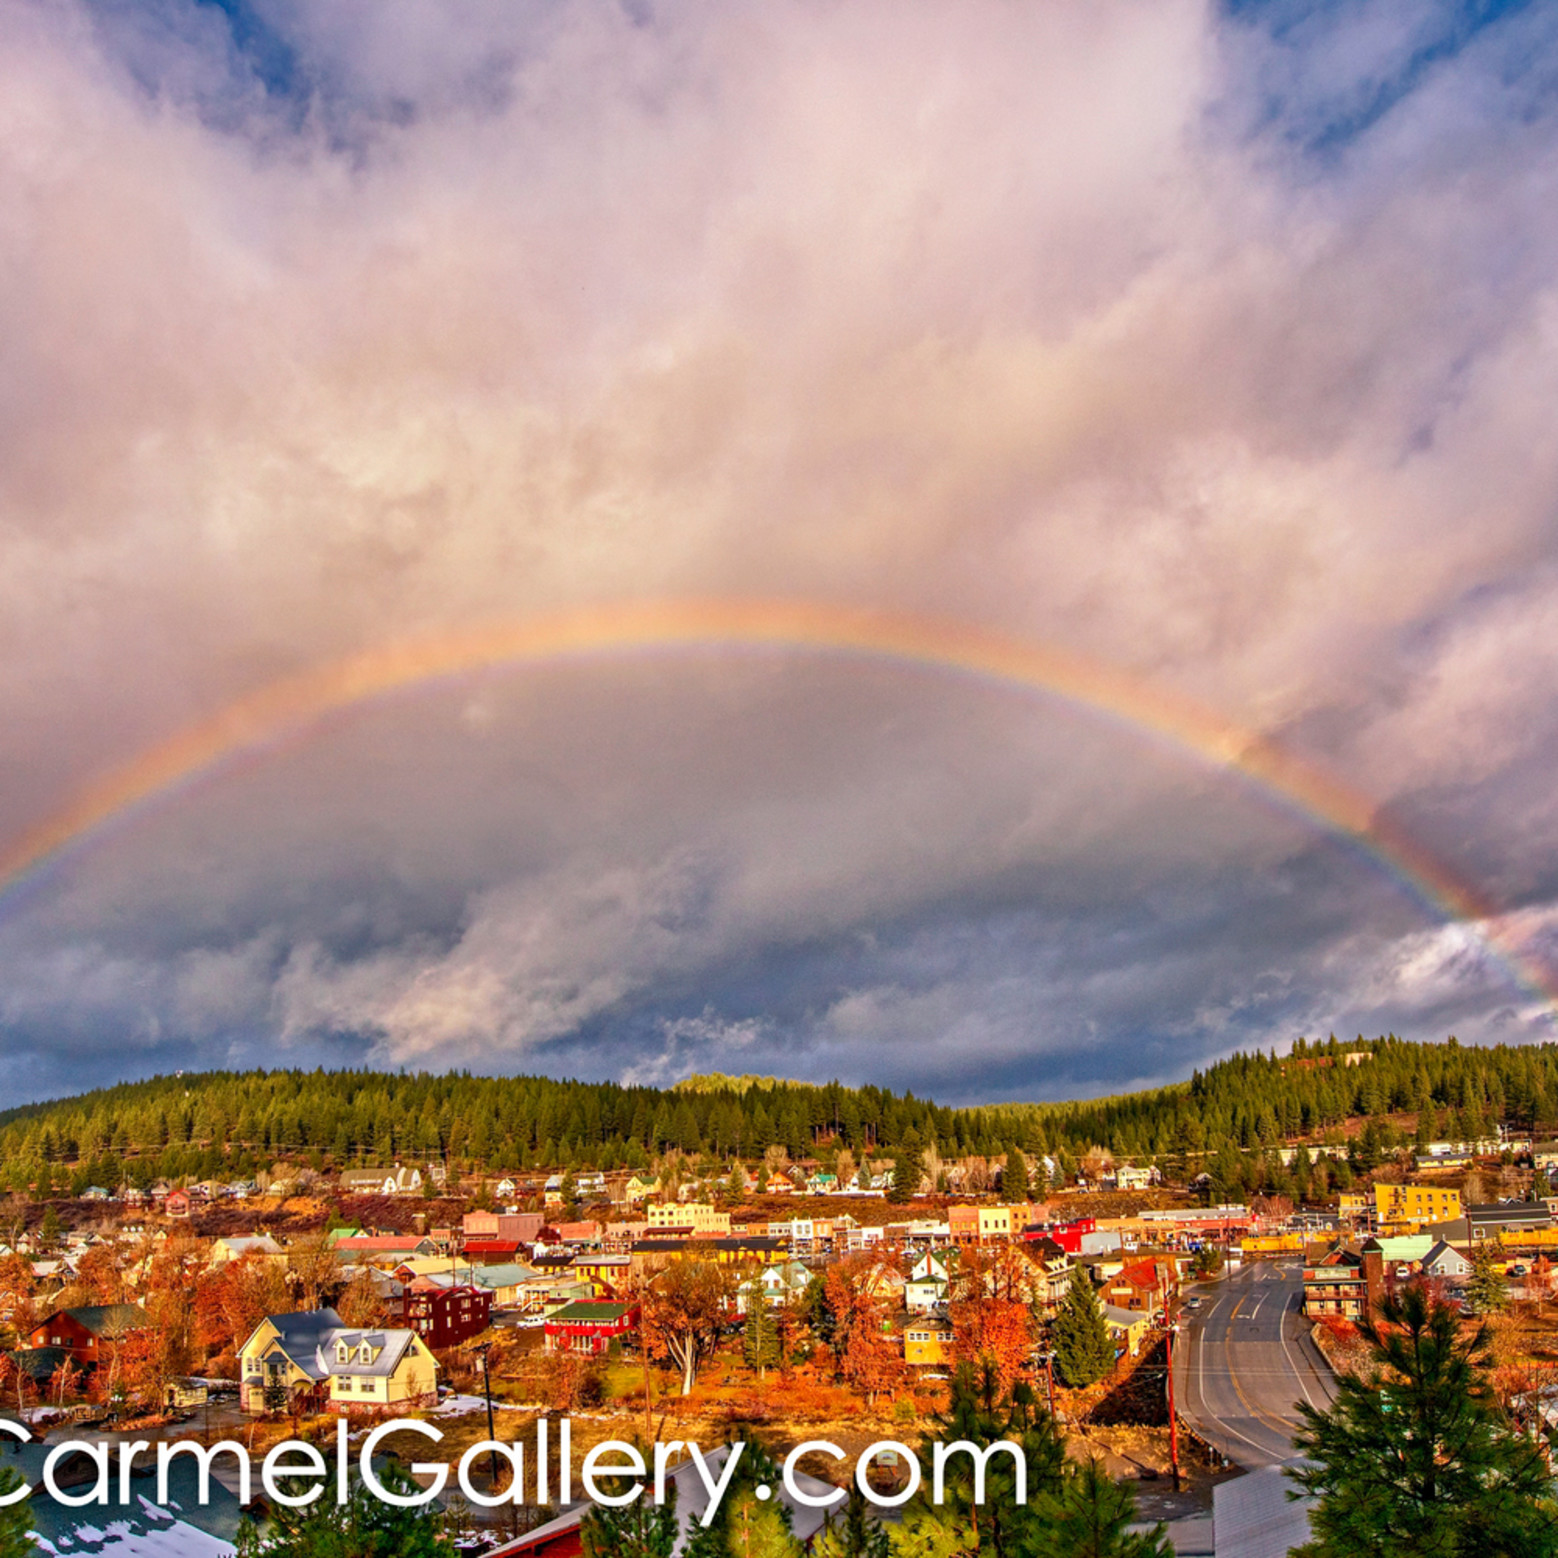 Clearing storm downtown truckee dasqcu